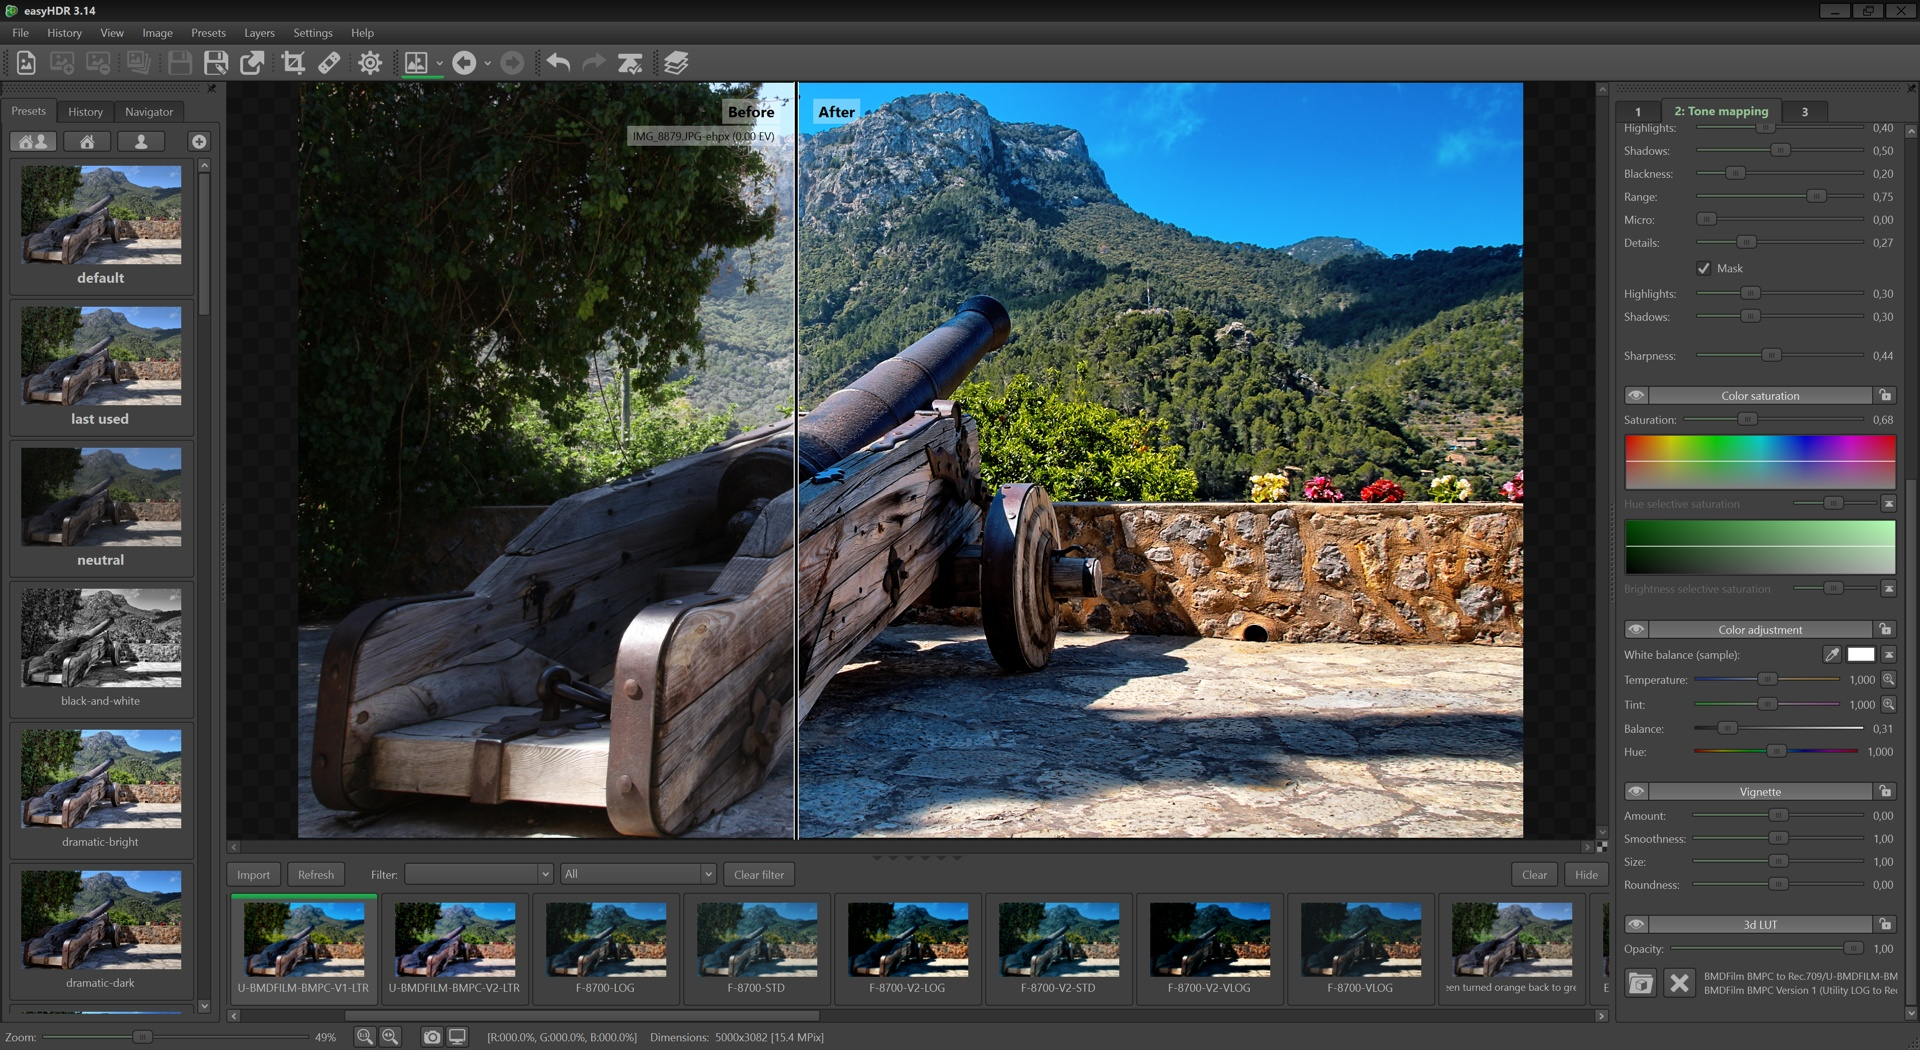 Click to view easyHDR 3.14 screenshot